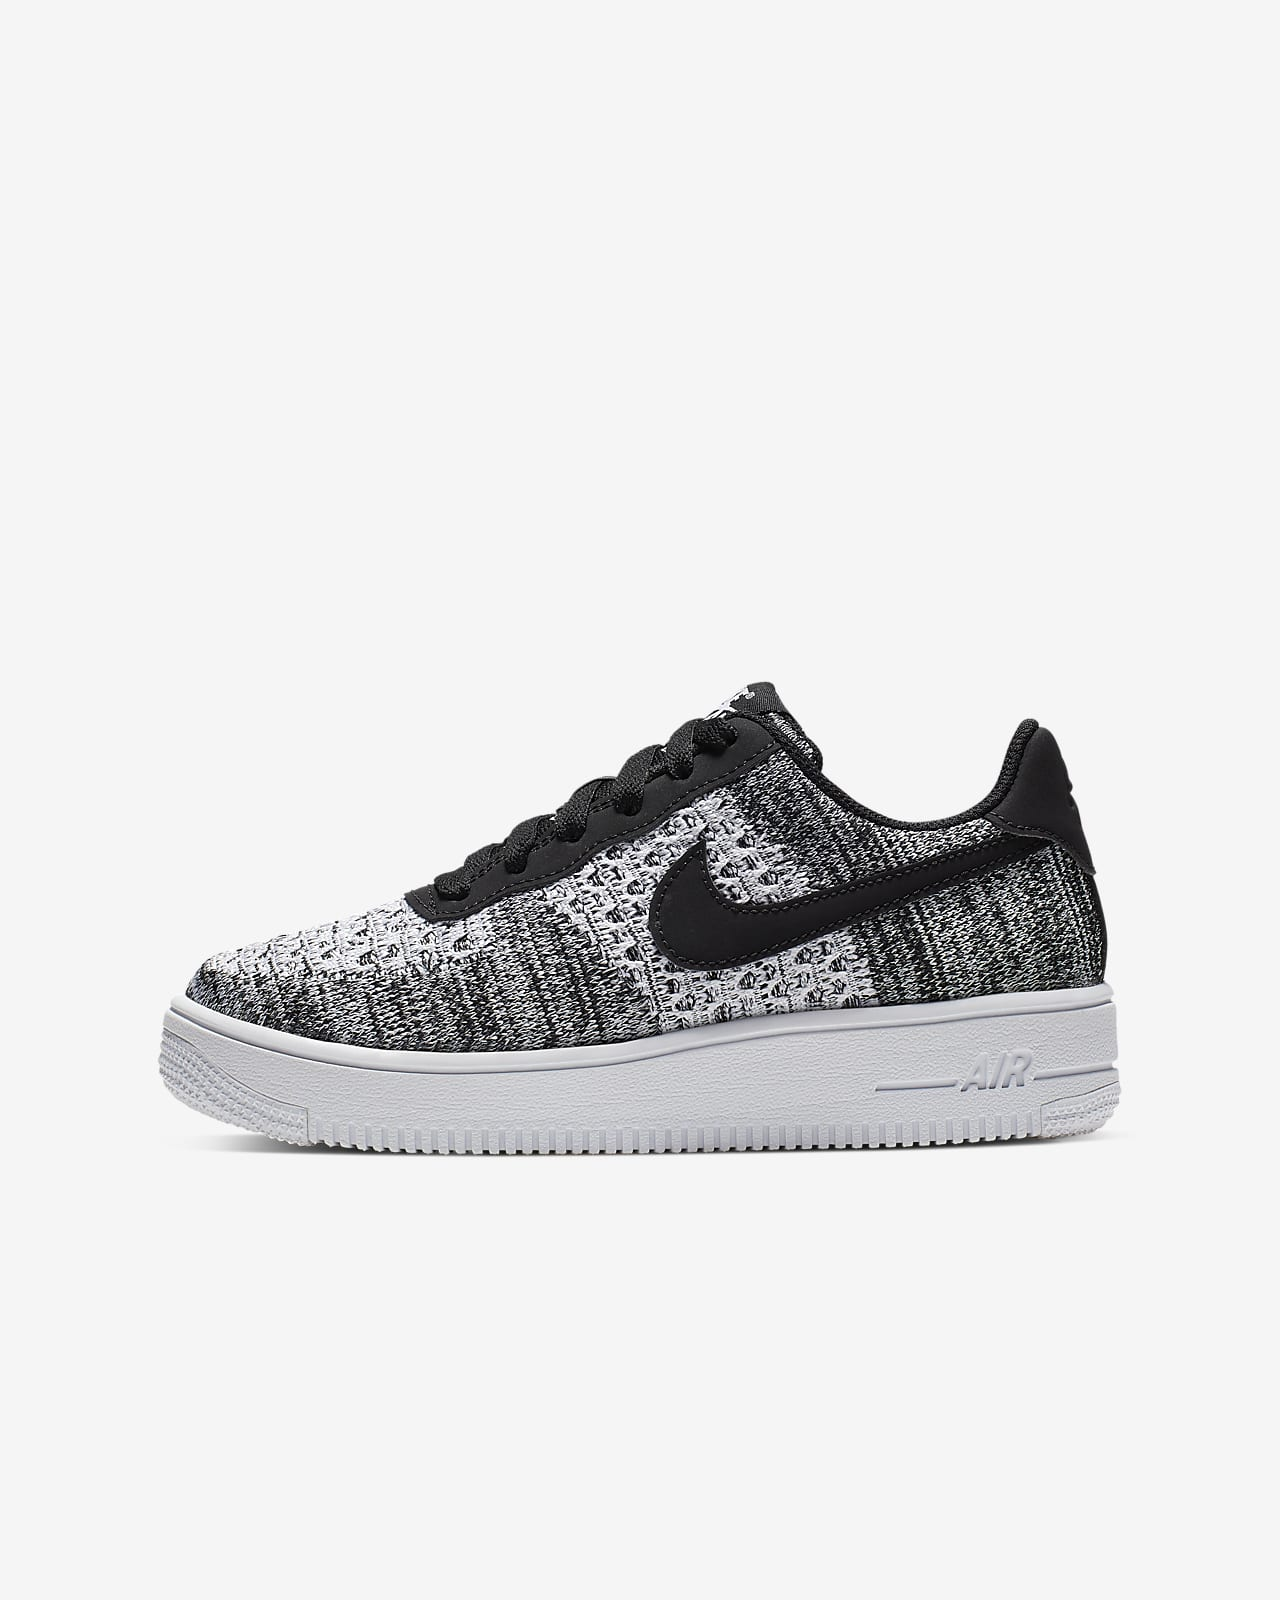 Acquista Nike Air Force 1 Flyknit 2.0 in Bianco